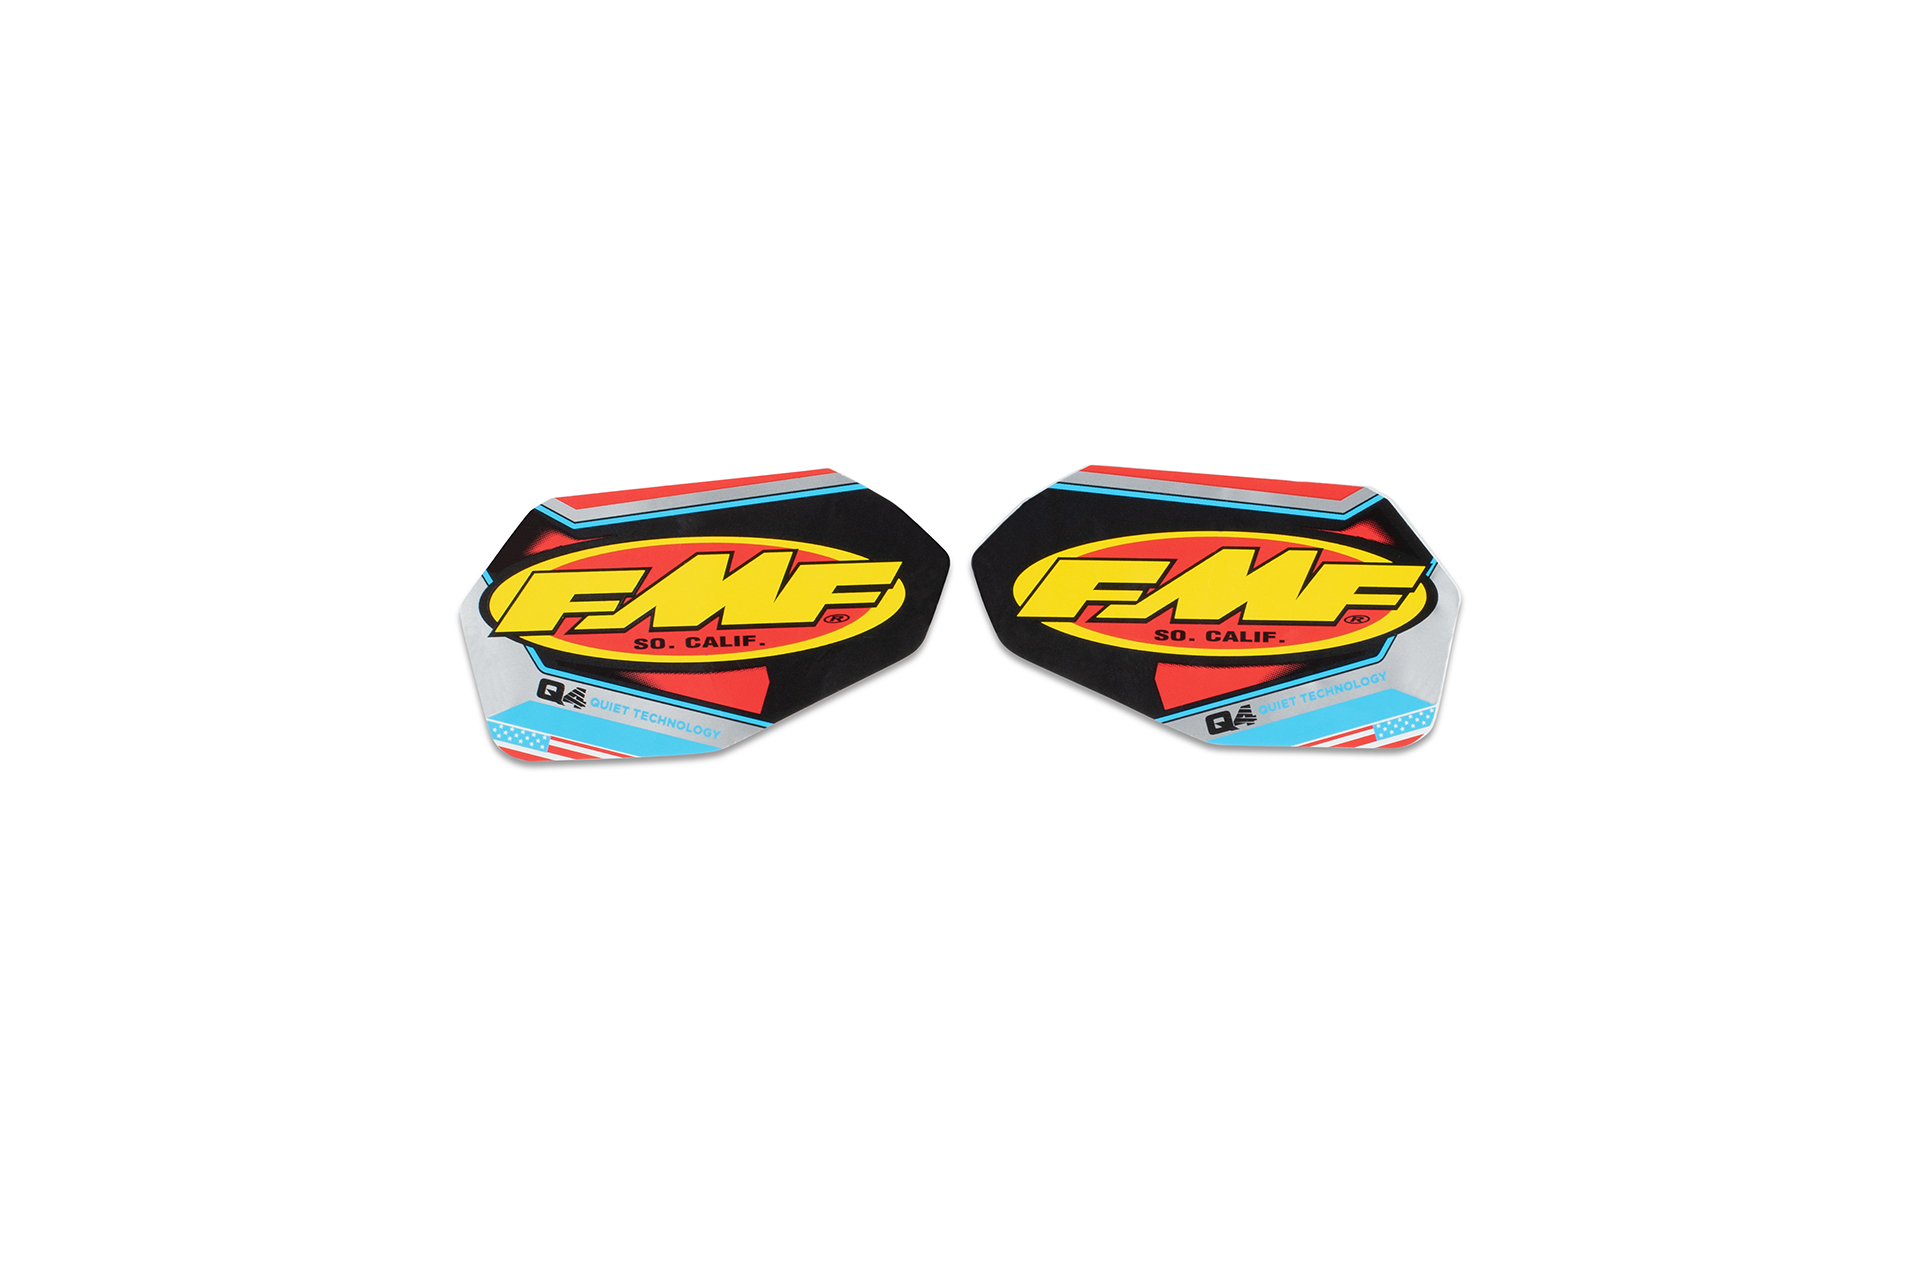 FMF Q4  2-PART LOGO DECAL REPLACEMENT 1807